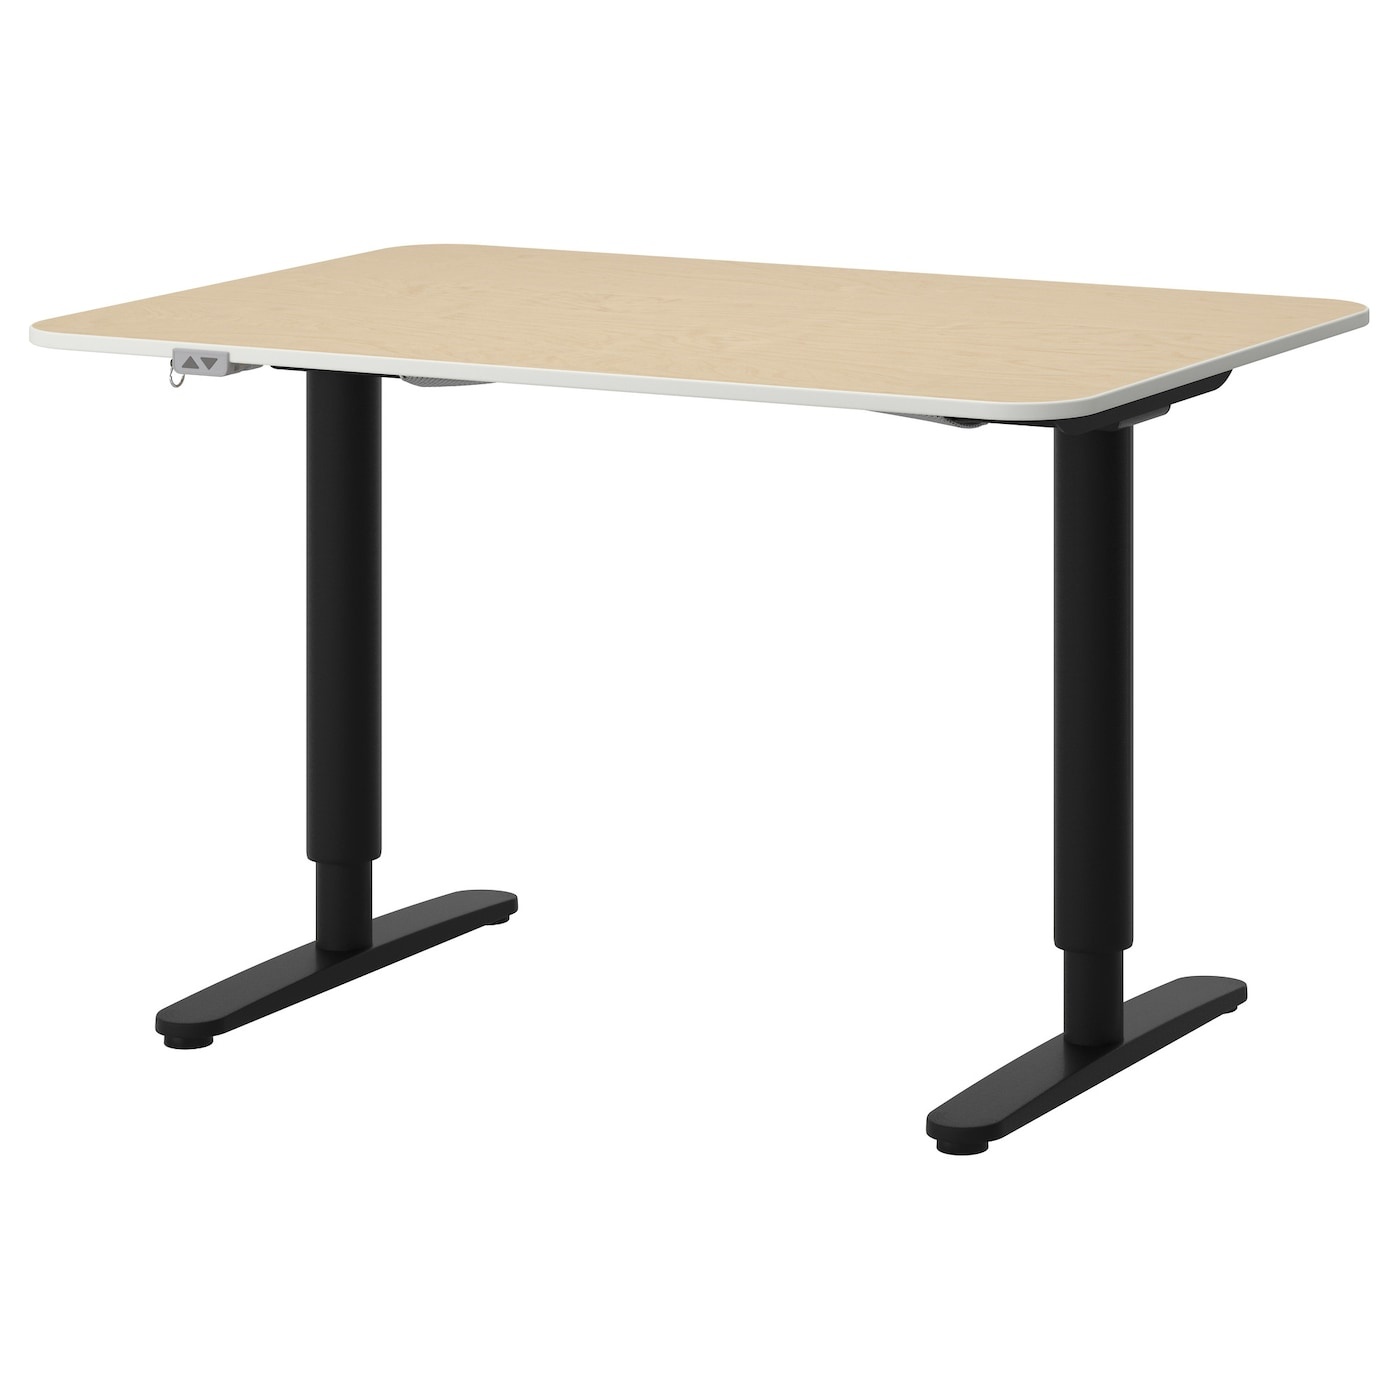 IKEA BEKANT desk sit/stand 10 year guarantee. Read about the terms in the